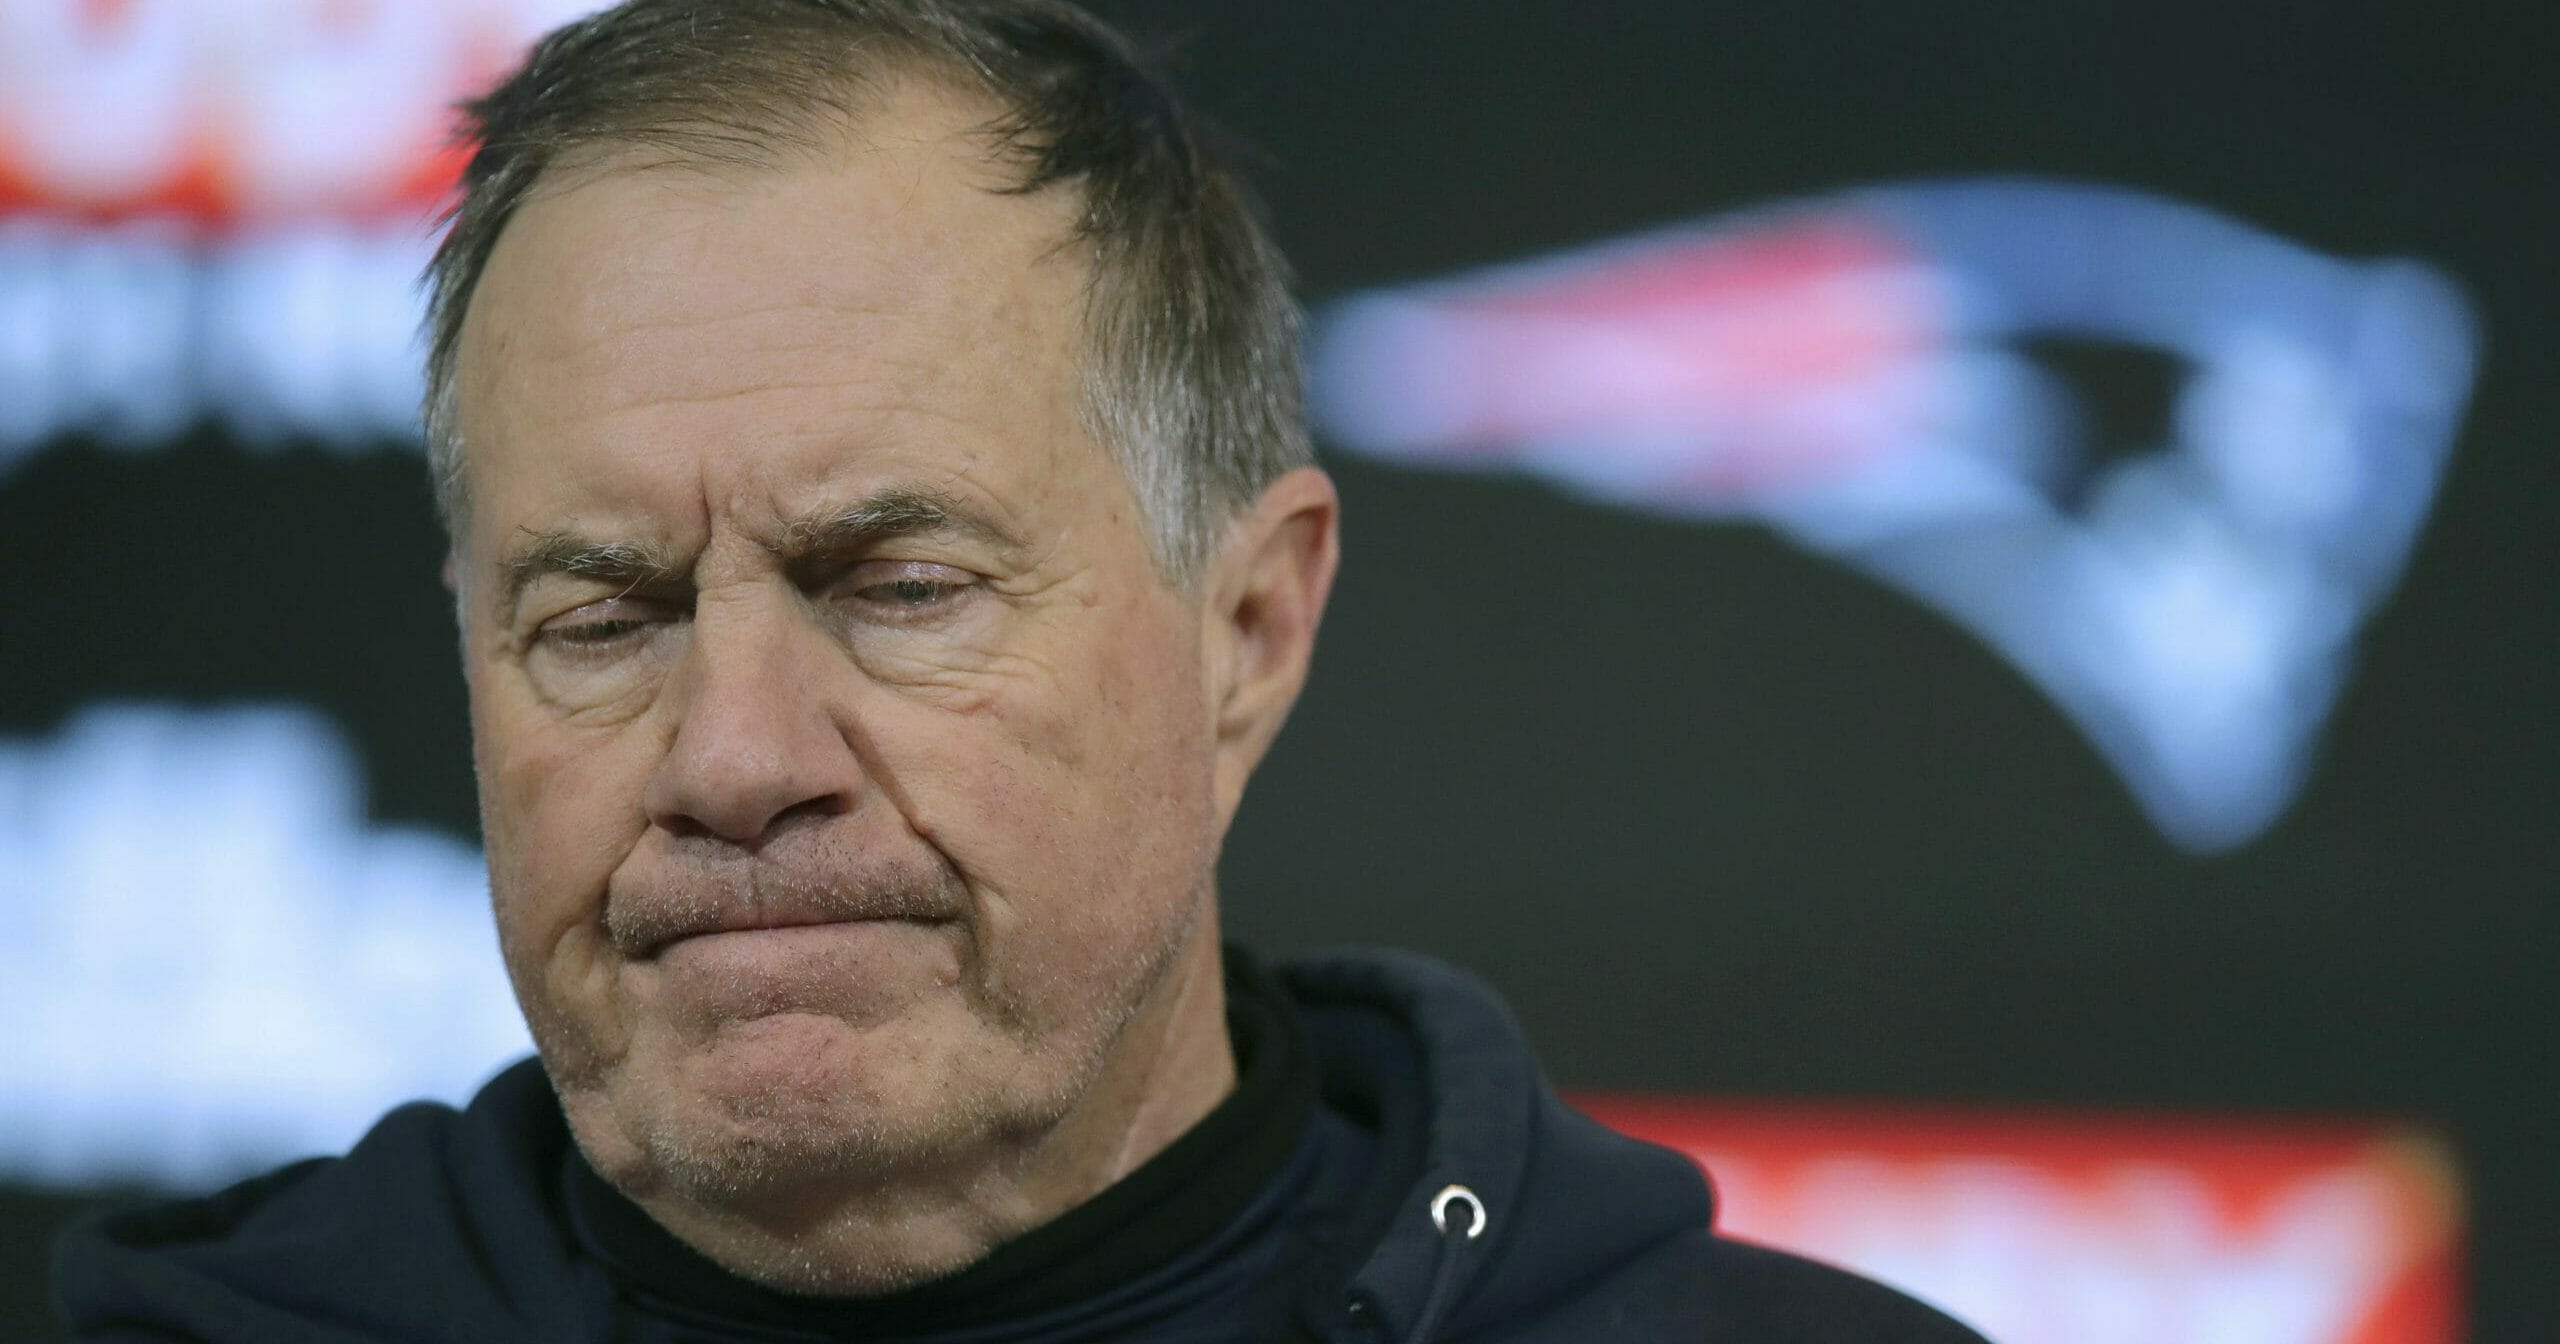 New England Patriots head coach Bill Belichick speaks to the media following an NFL wild-card playoff loss to the Tennessee Titan on Jan. 4, 2020, in Foxborough, Massachusetts.